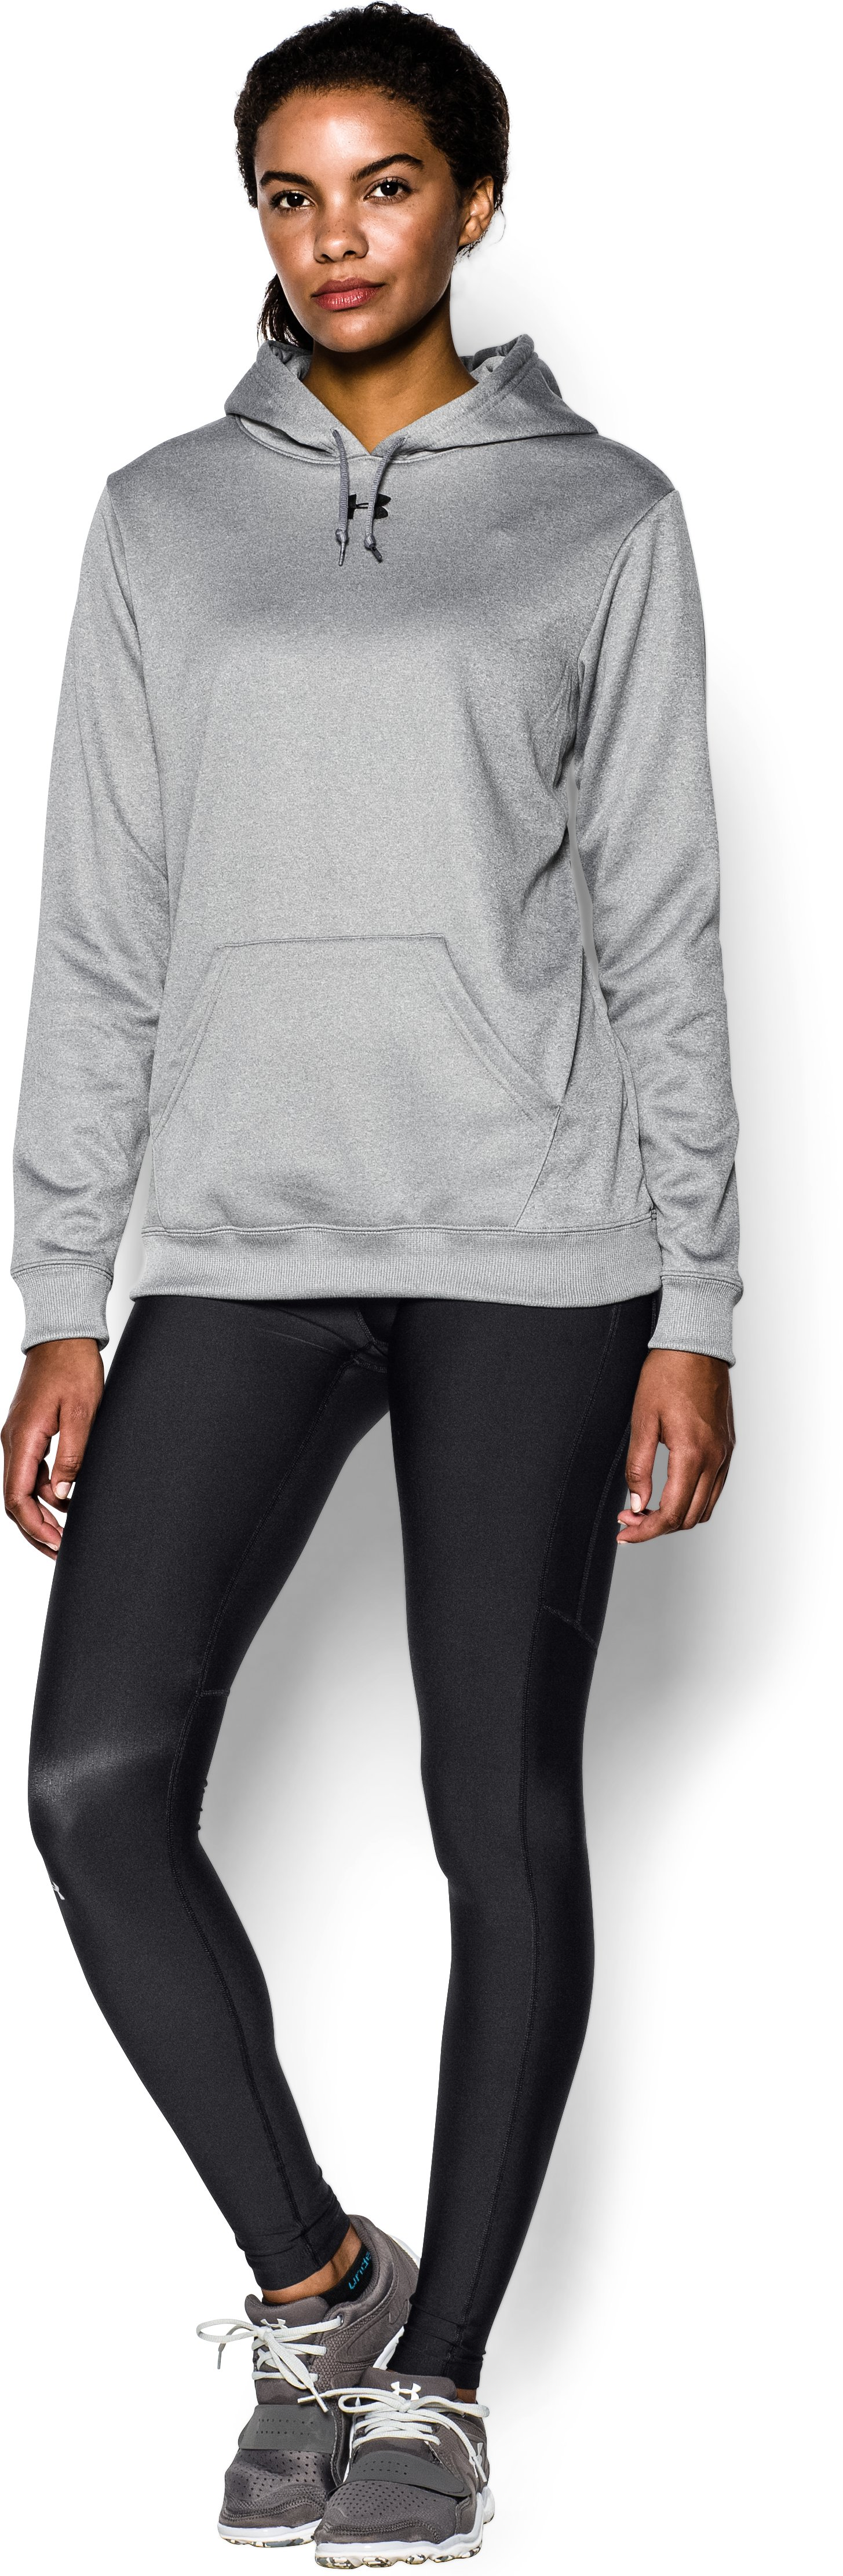 Women's Armour® Fleece Team Hoodie, True Gray Heather